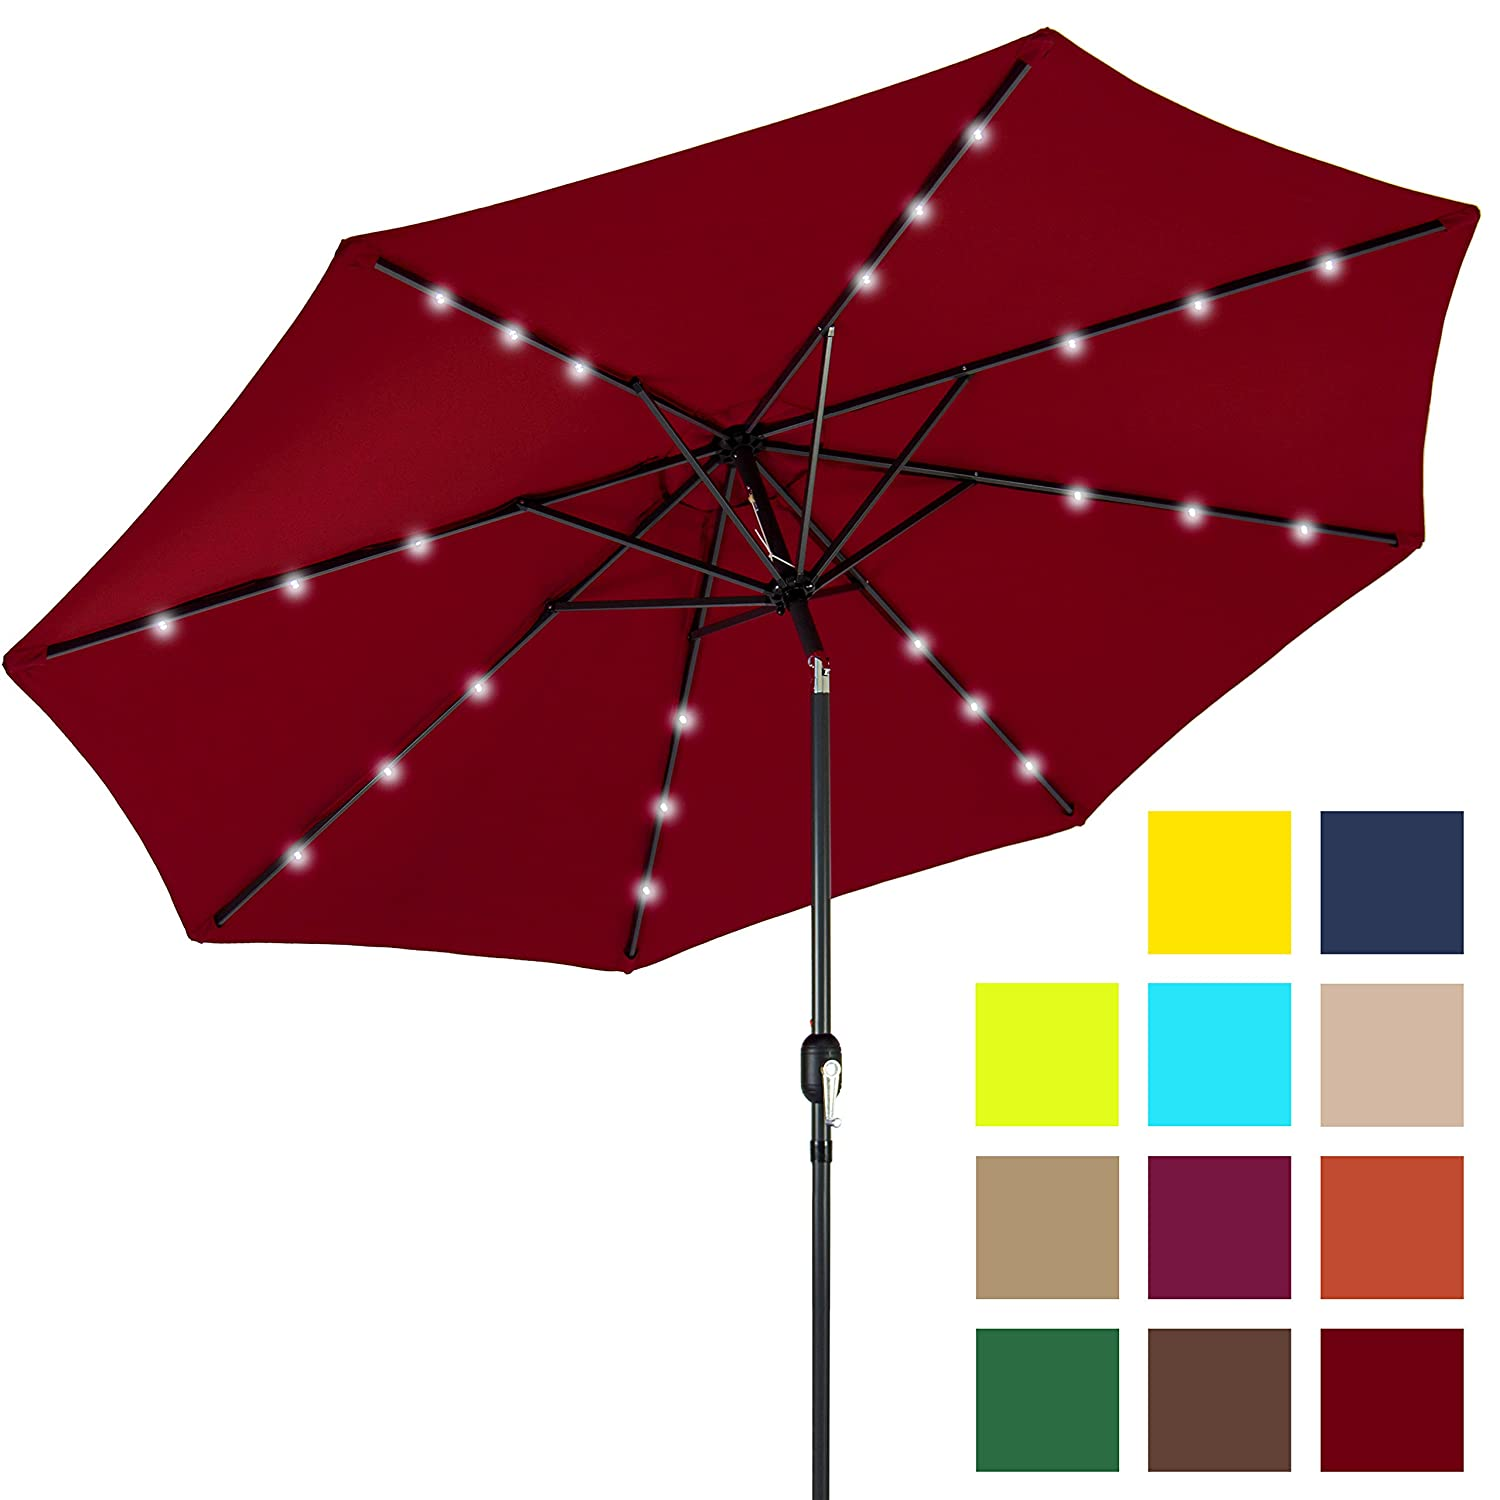 Best Choice Products 10 Ft Deluxe Patio Umbrella W/Solar LED Lights